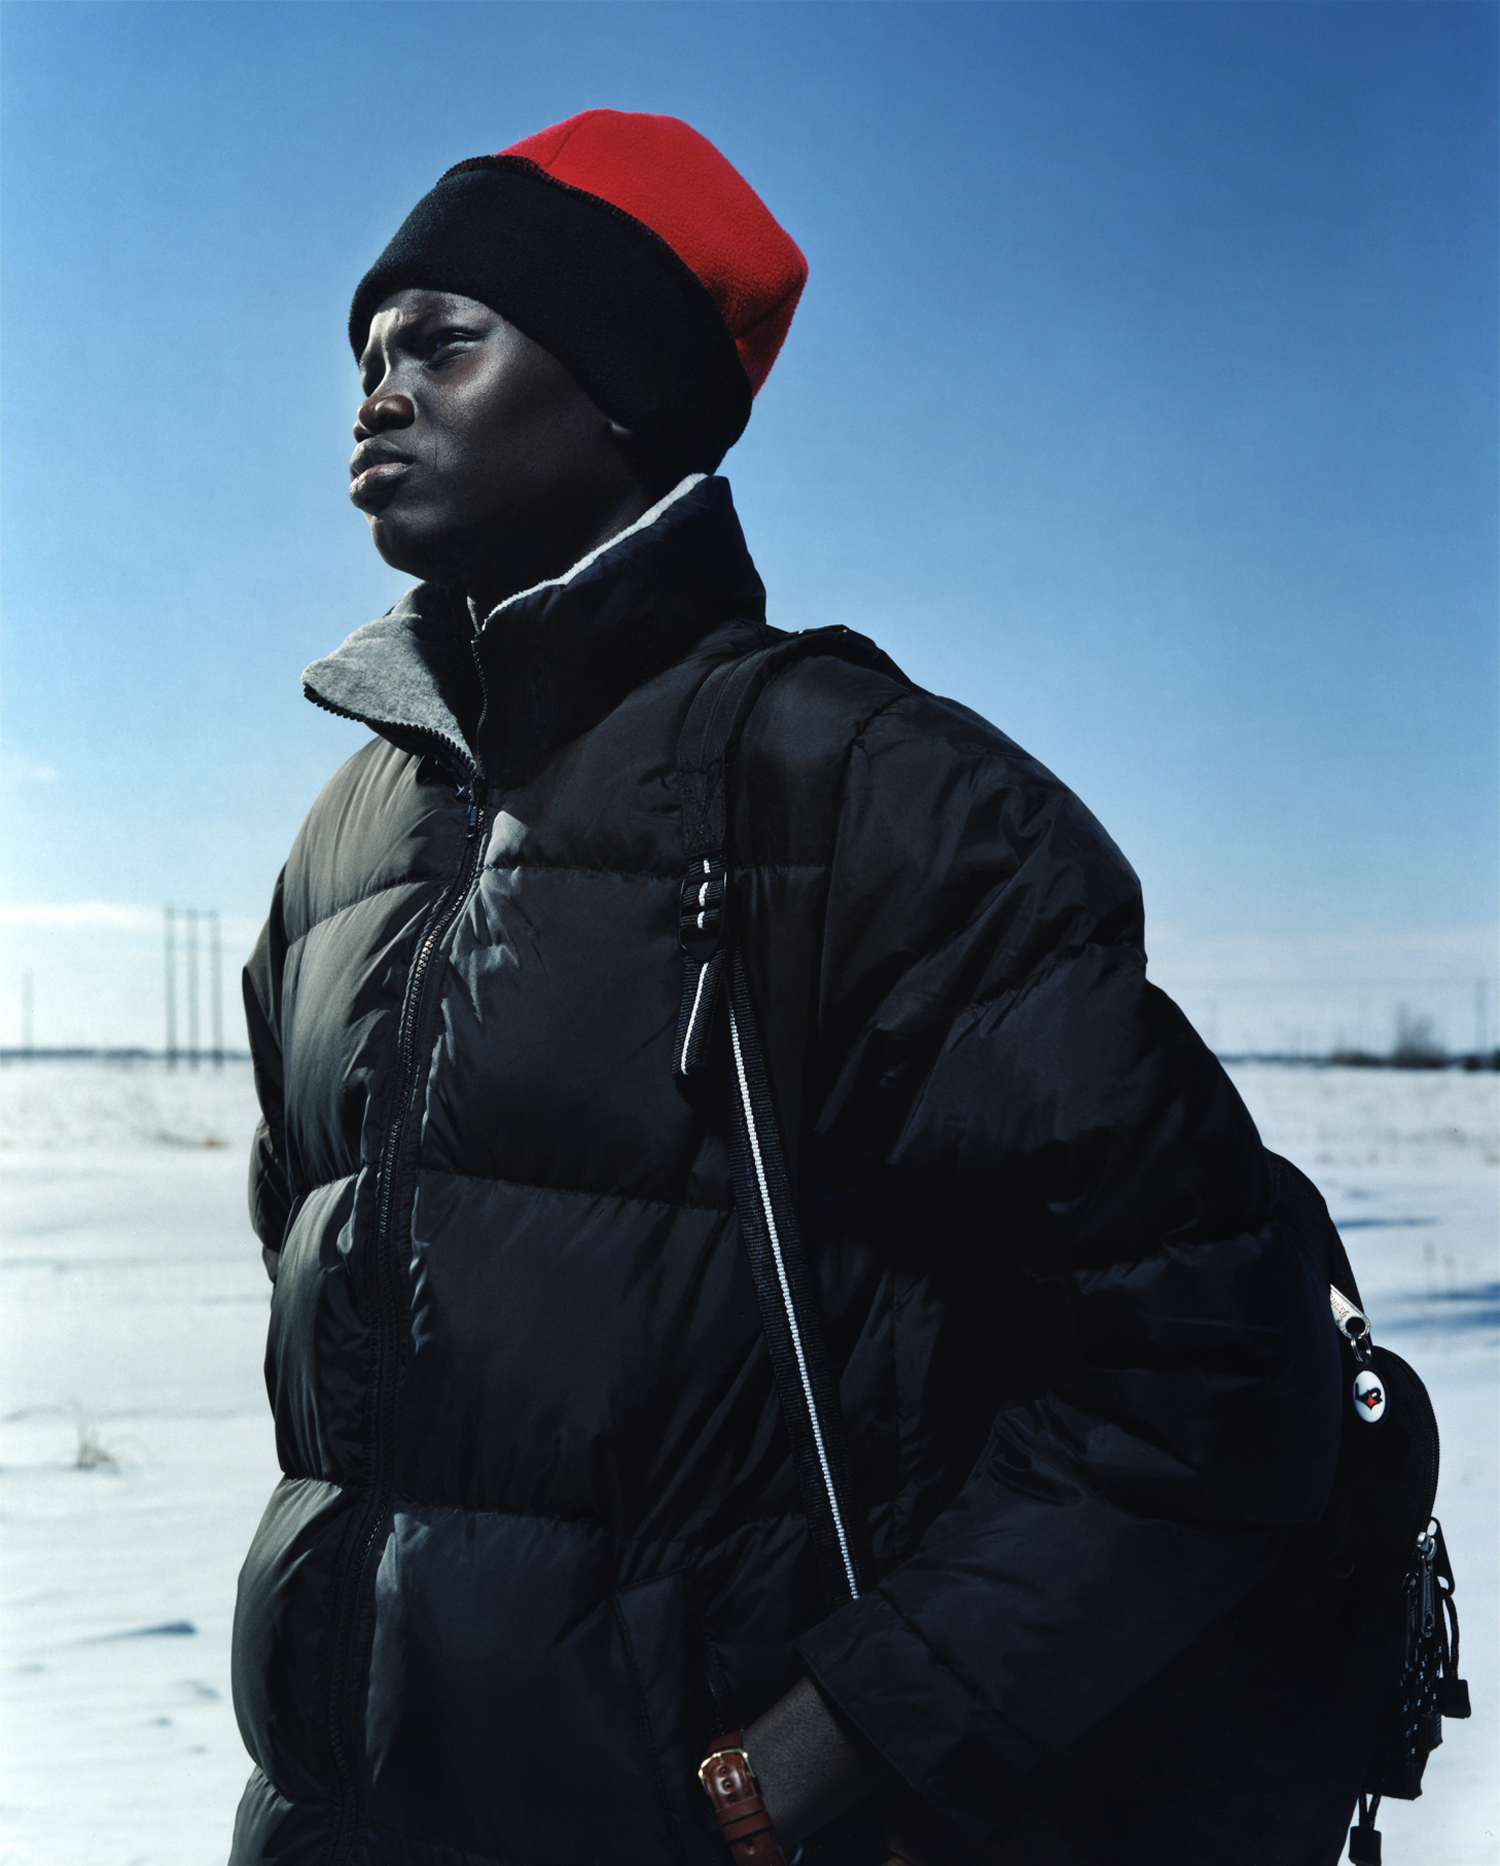 Riak Dut - One of the Lost Boys of the Sudan who ended up in Fargo, ND in the middle of winter in sub-zero temperatures. Fargo, ND - Feb. 2001 for the New York TImes Magazine